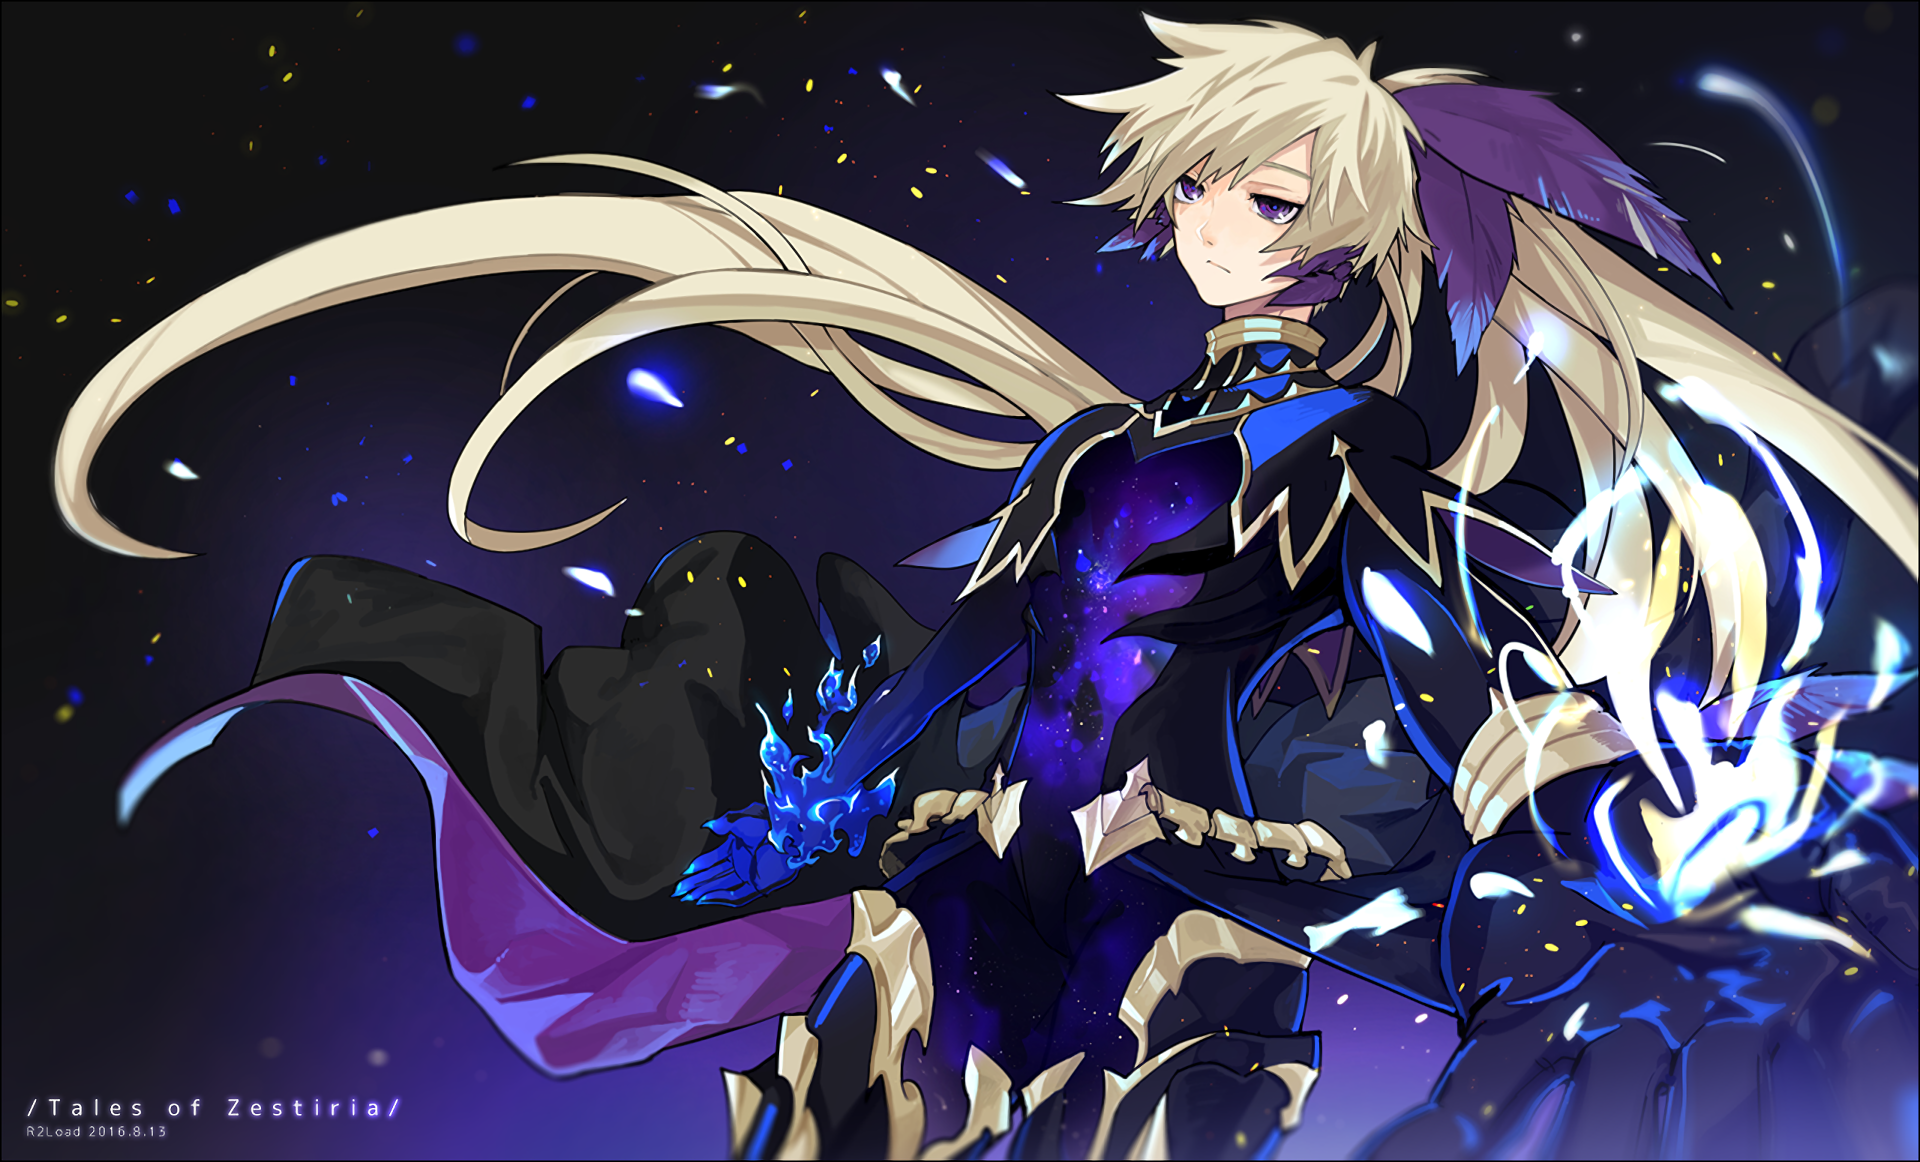 Anime Tales Of Zestiria The X Wallpaper Tales Of Zestiria Tales Of Berseria Tales